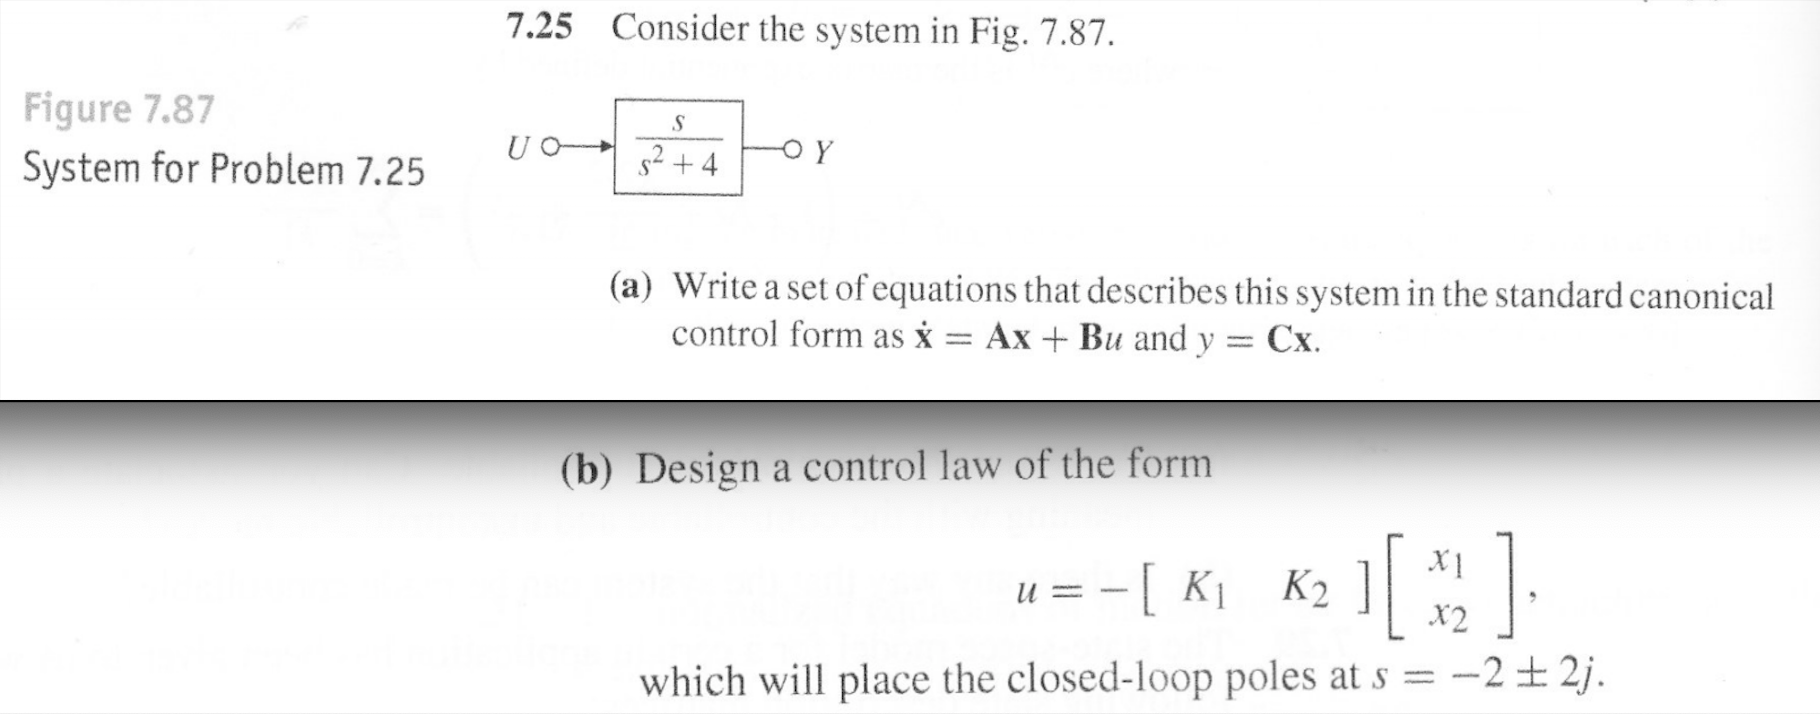 Consider the system in Fig. 7.87. 7.25 Figure 7.87 System for Problem 7.25 -o Y s2+4 (a) Write a set of equations that describes this system in the standard canonical control form as x = AxBu and y Cx (b) Design a control law of the form u Ki K2 2j which will place the closed-loop poles at s= -2